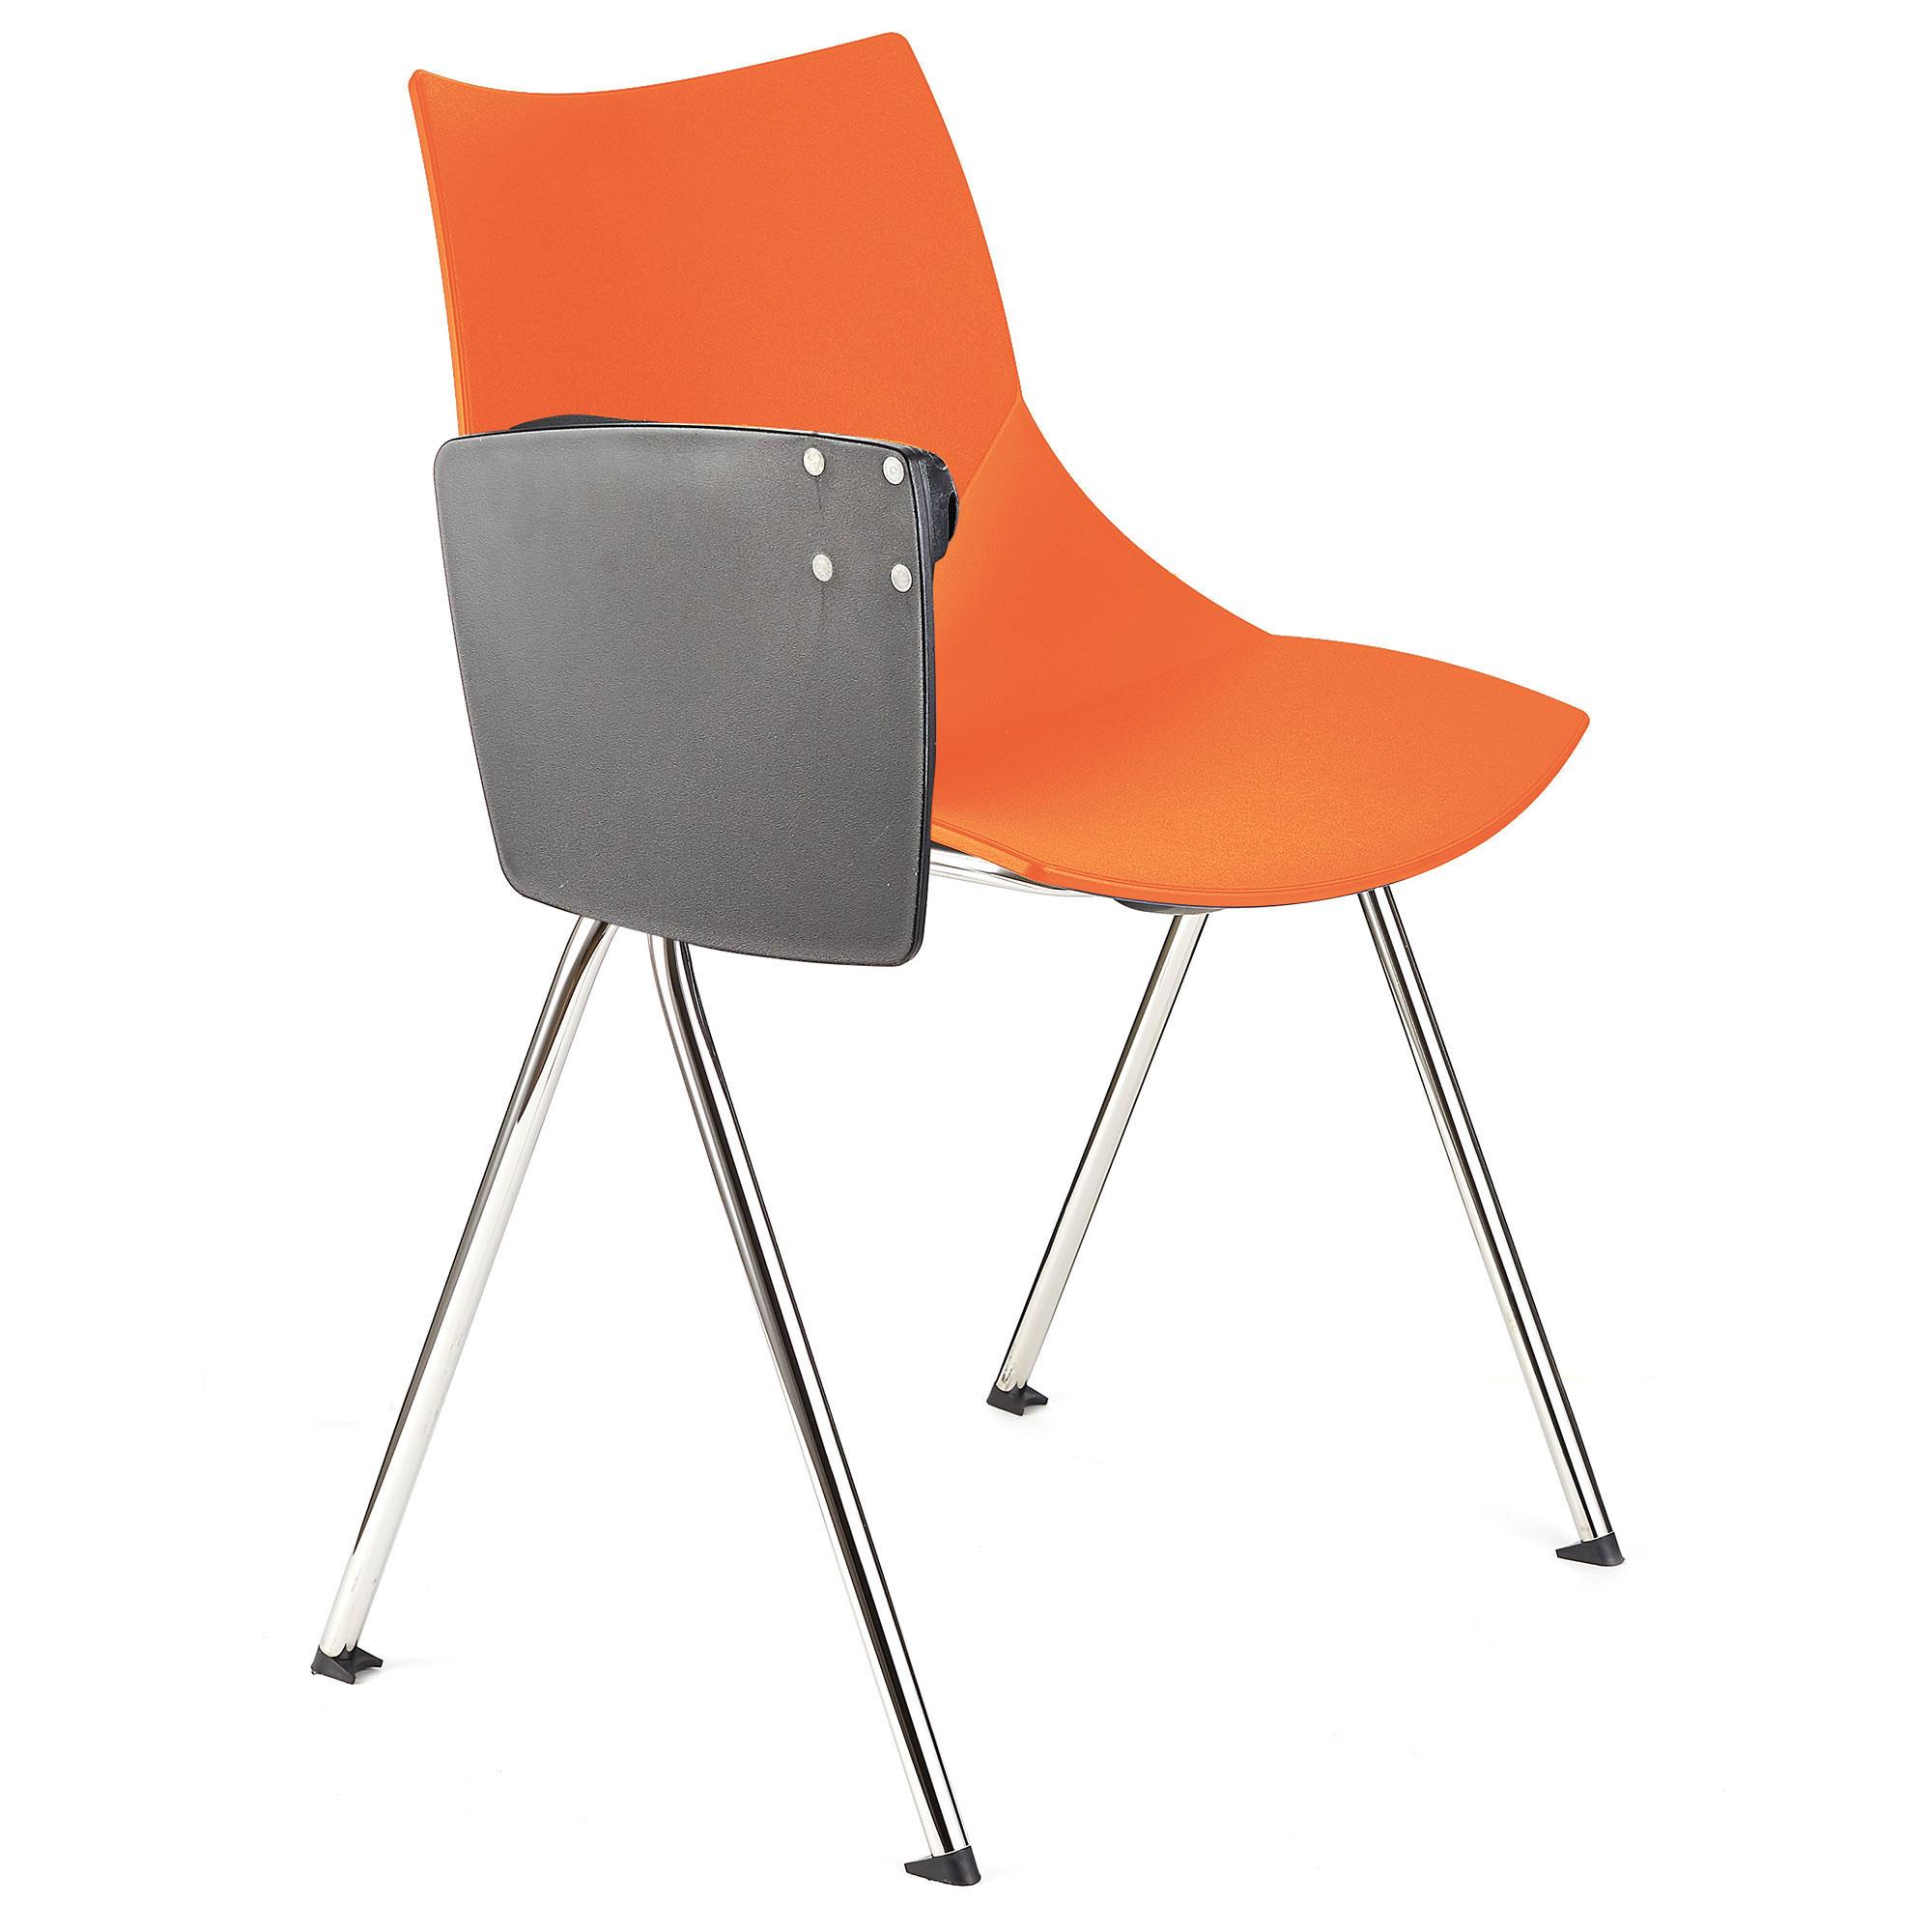 Chaise de réunion AMIR AVEC TABLETTE, Commode et Pratique, Orange